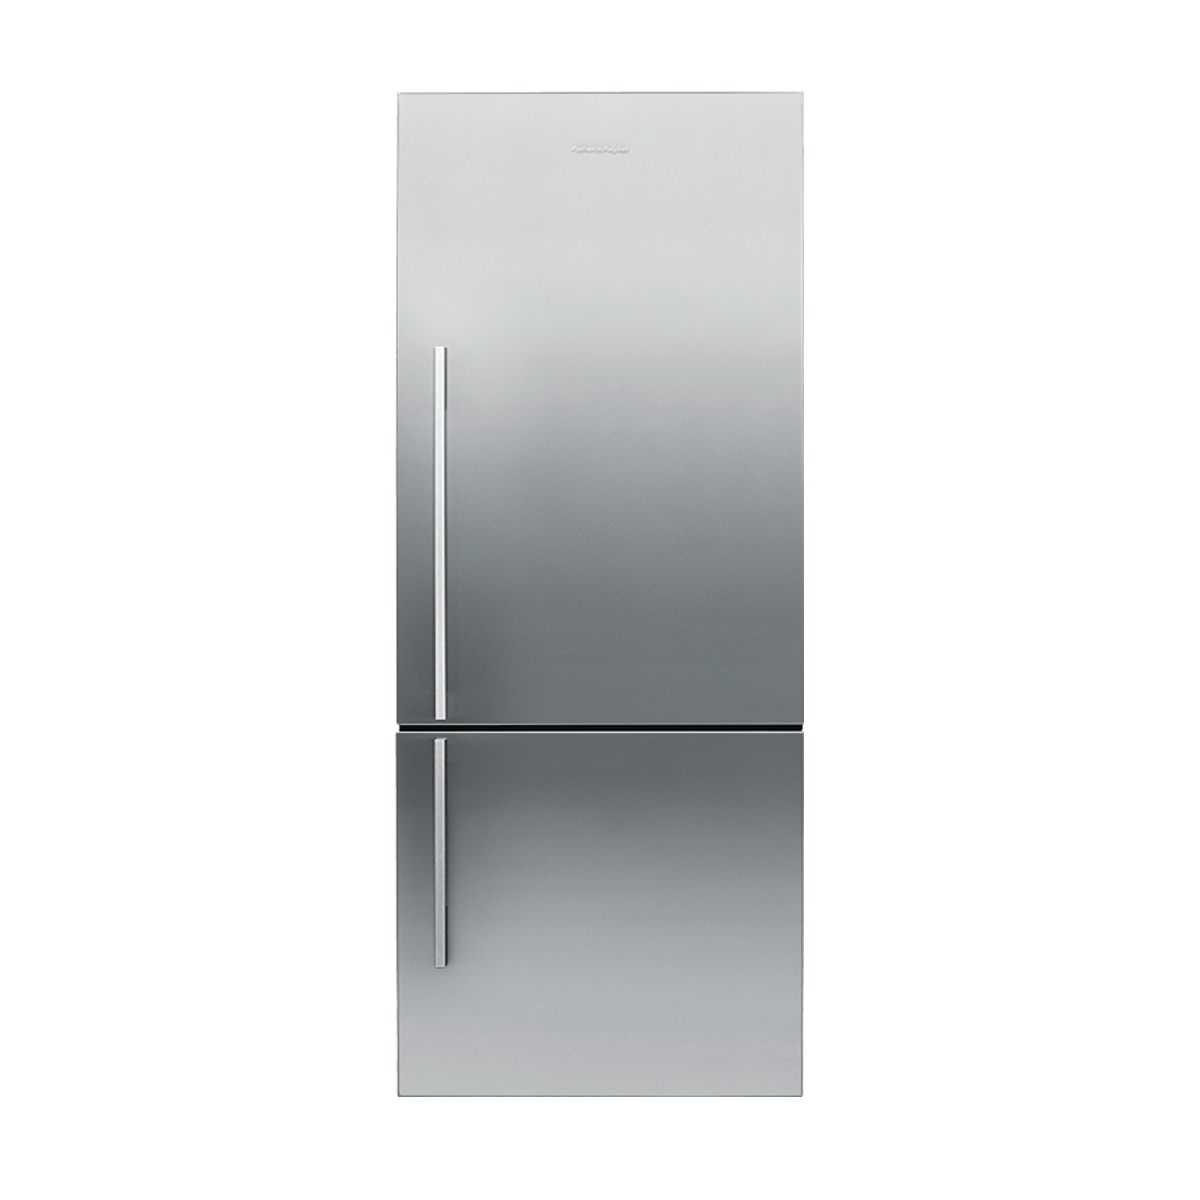 Fisher & Paykel Bottom Mount Fridge E402BRXFD4